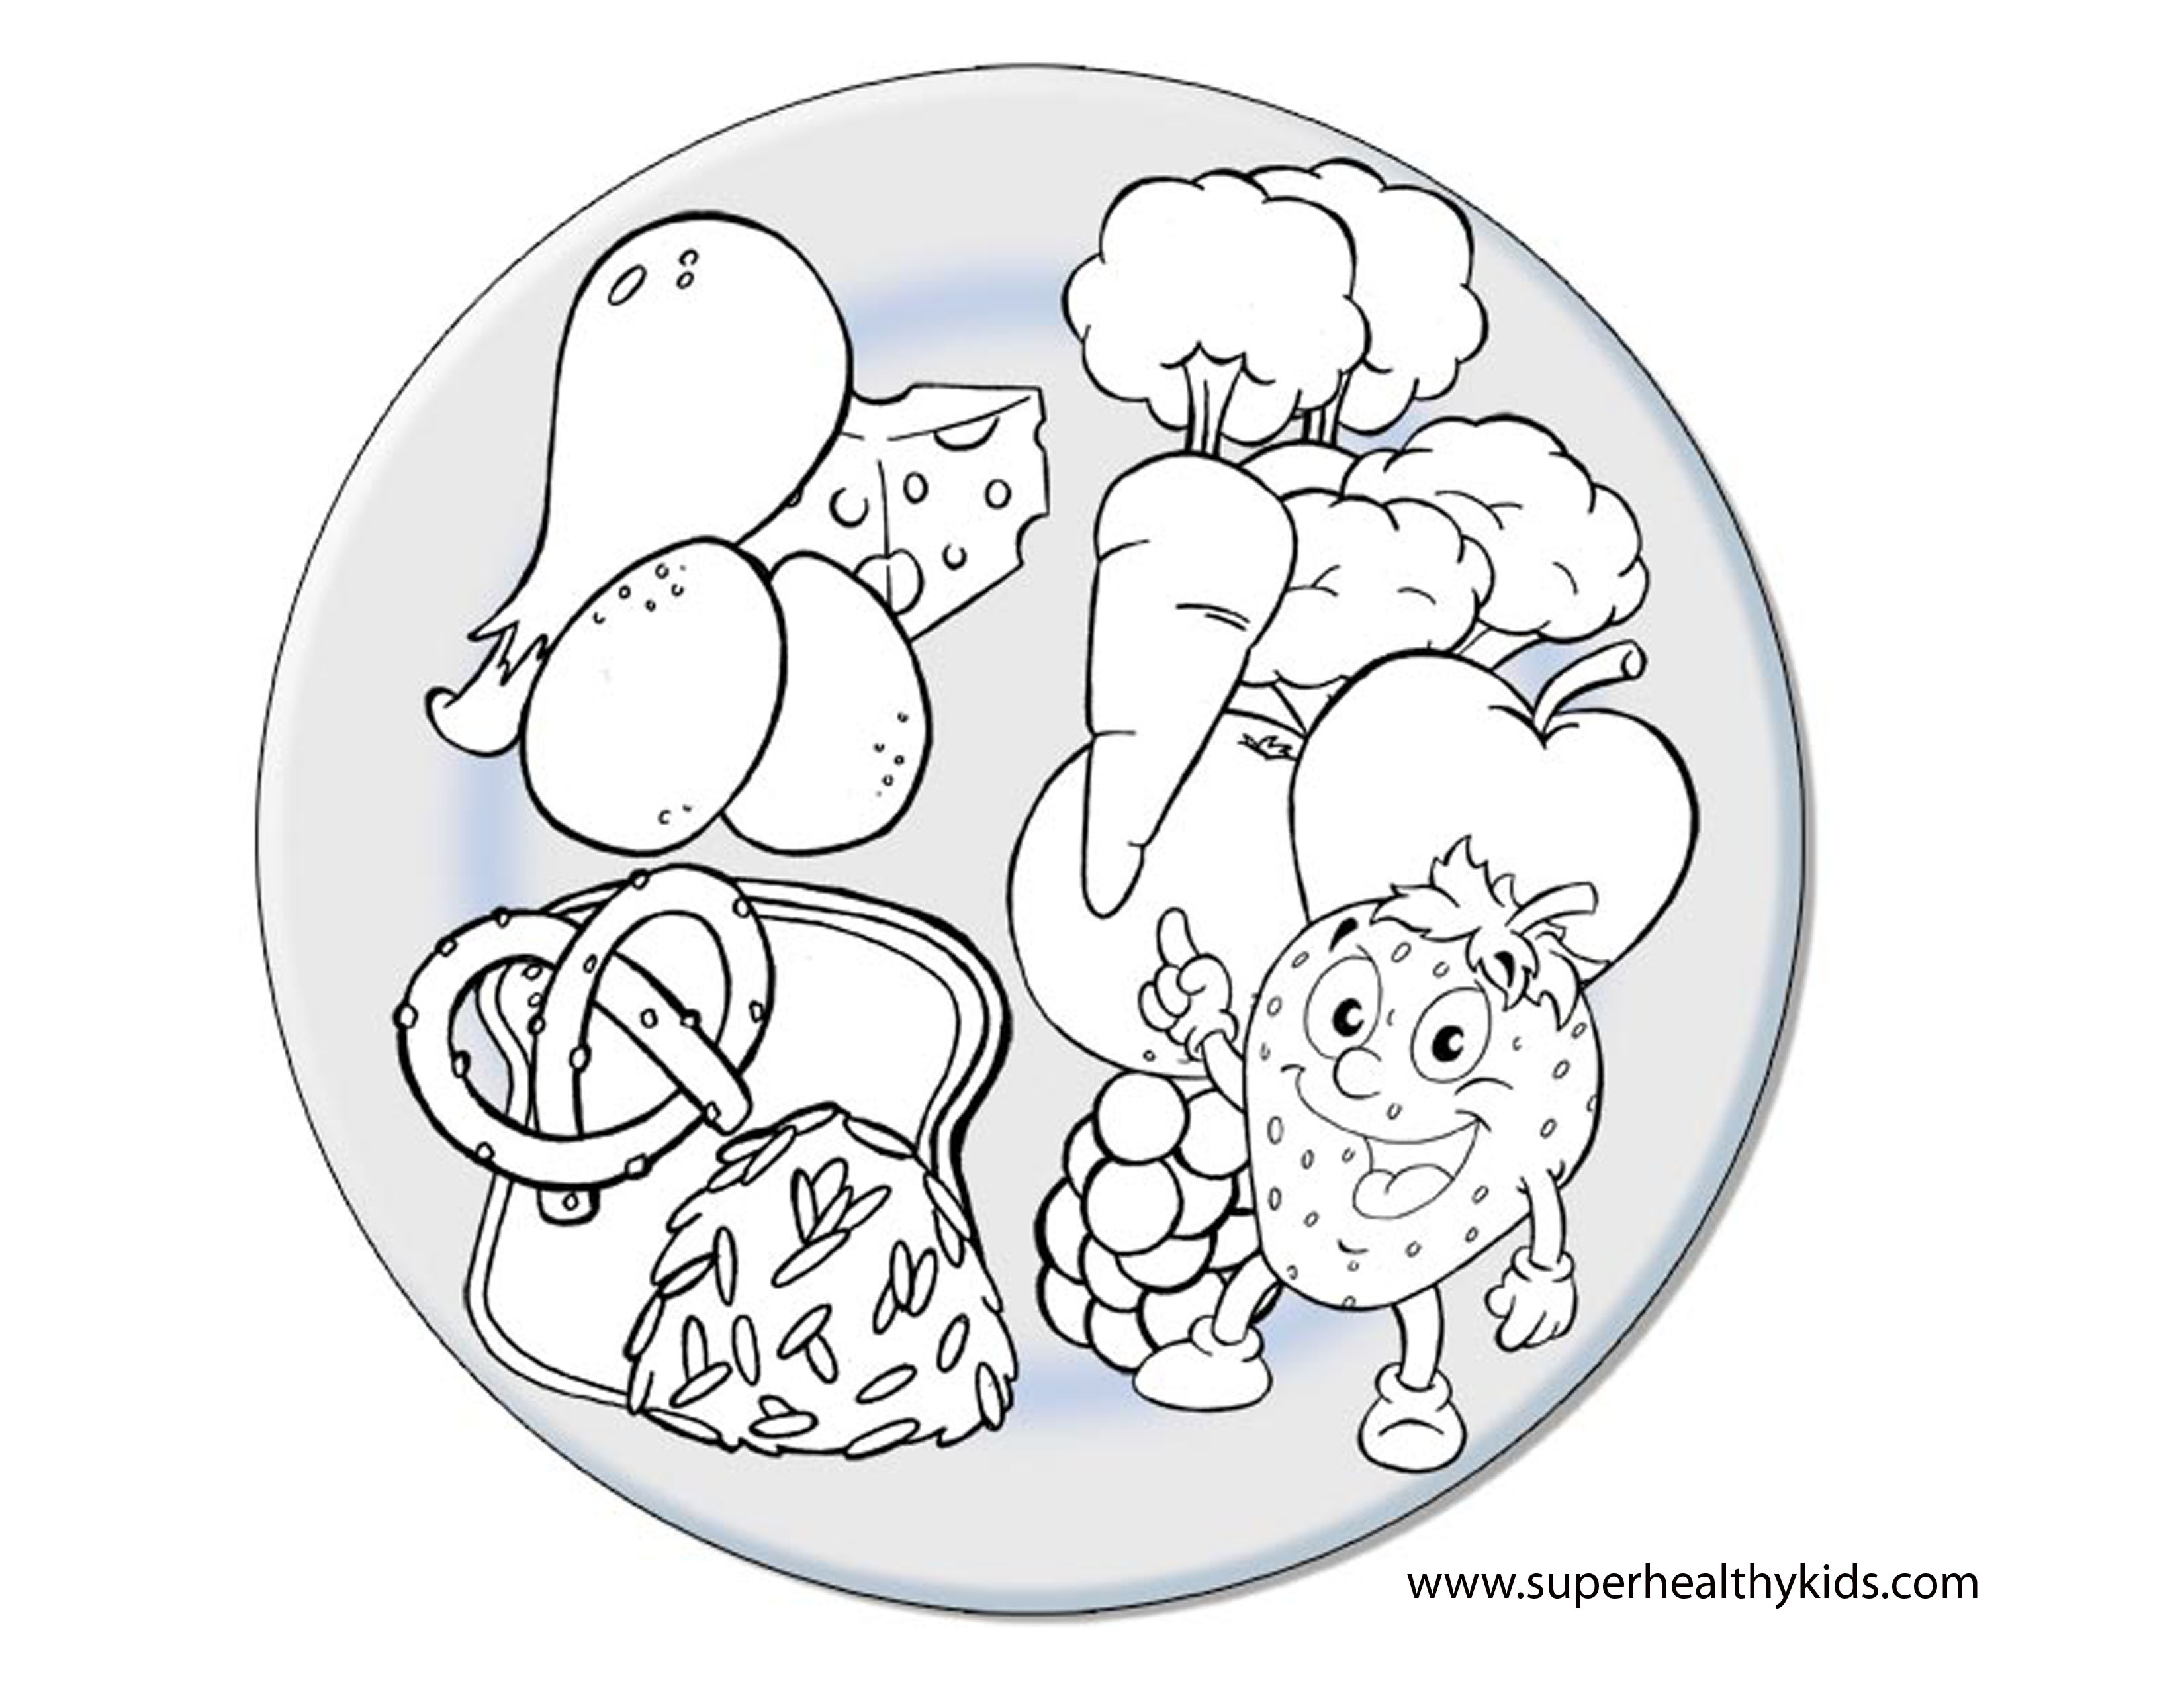 childrens food colouring pictures : Healthy Food Coloring Pages Coloring Pages To Download And Print